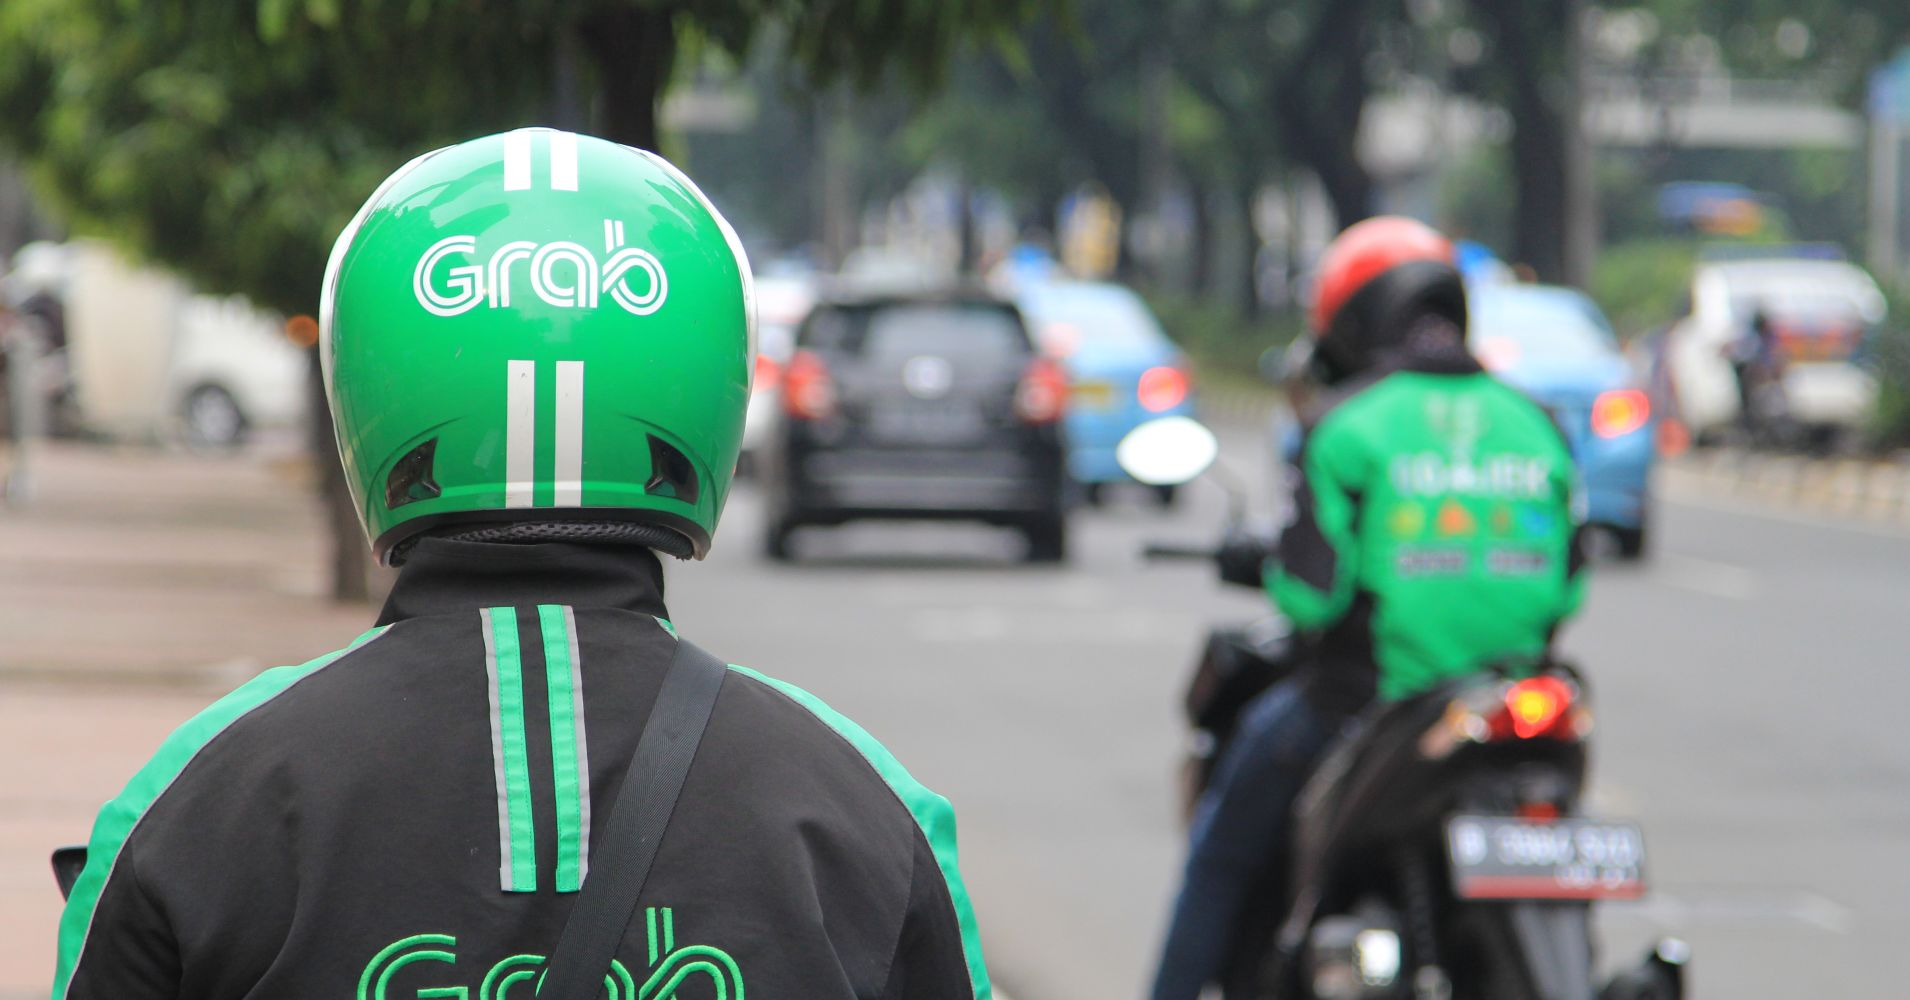 Moving beyond ride-hailing, Southeast Asia's Grab is rolling out financial services